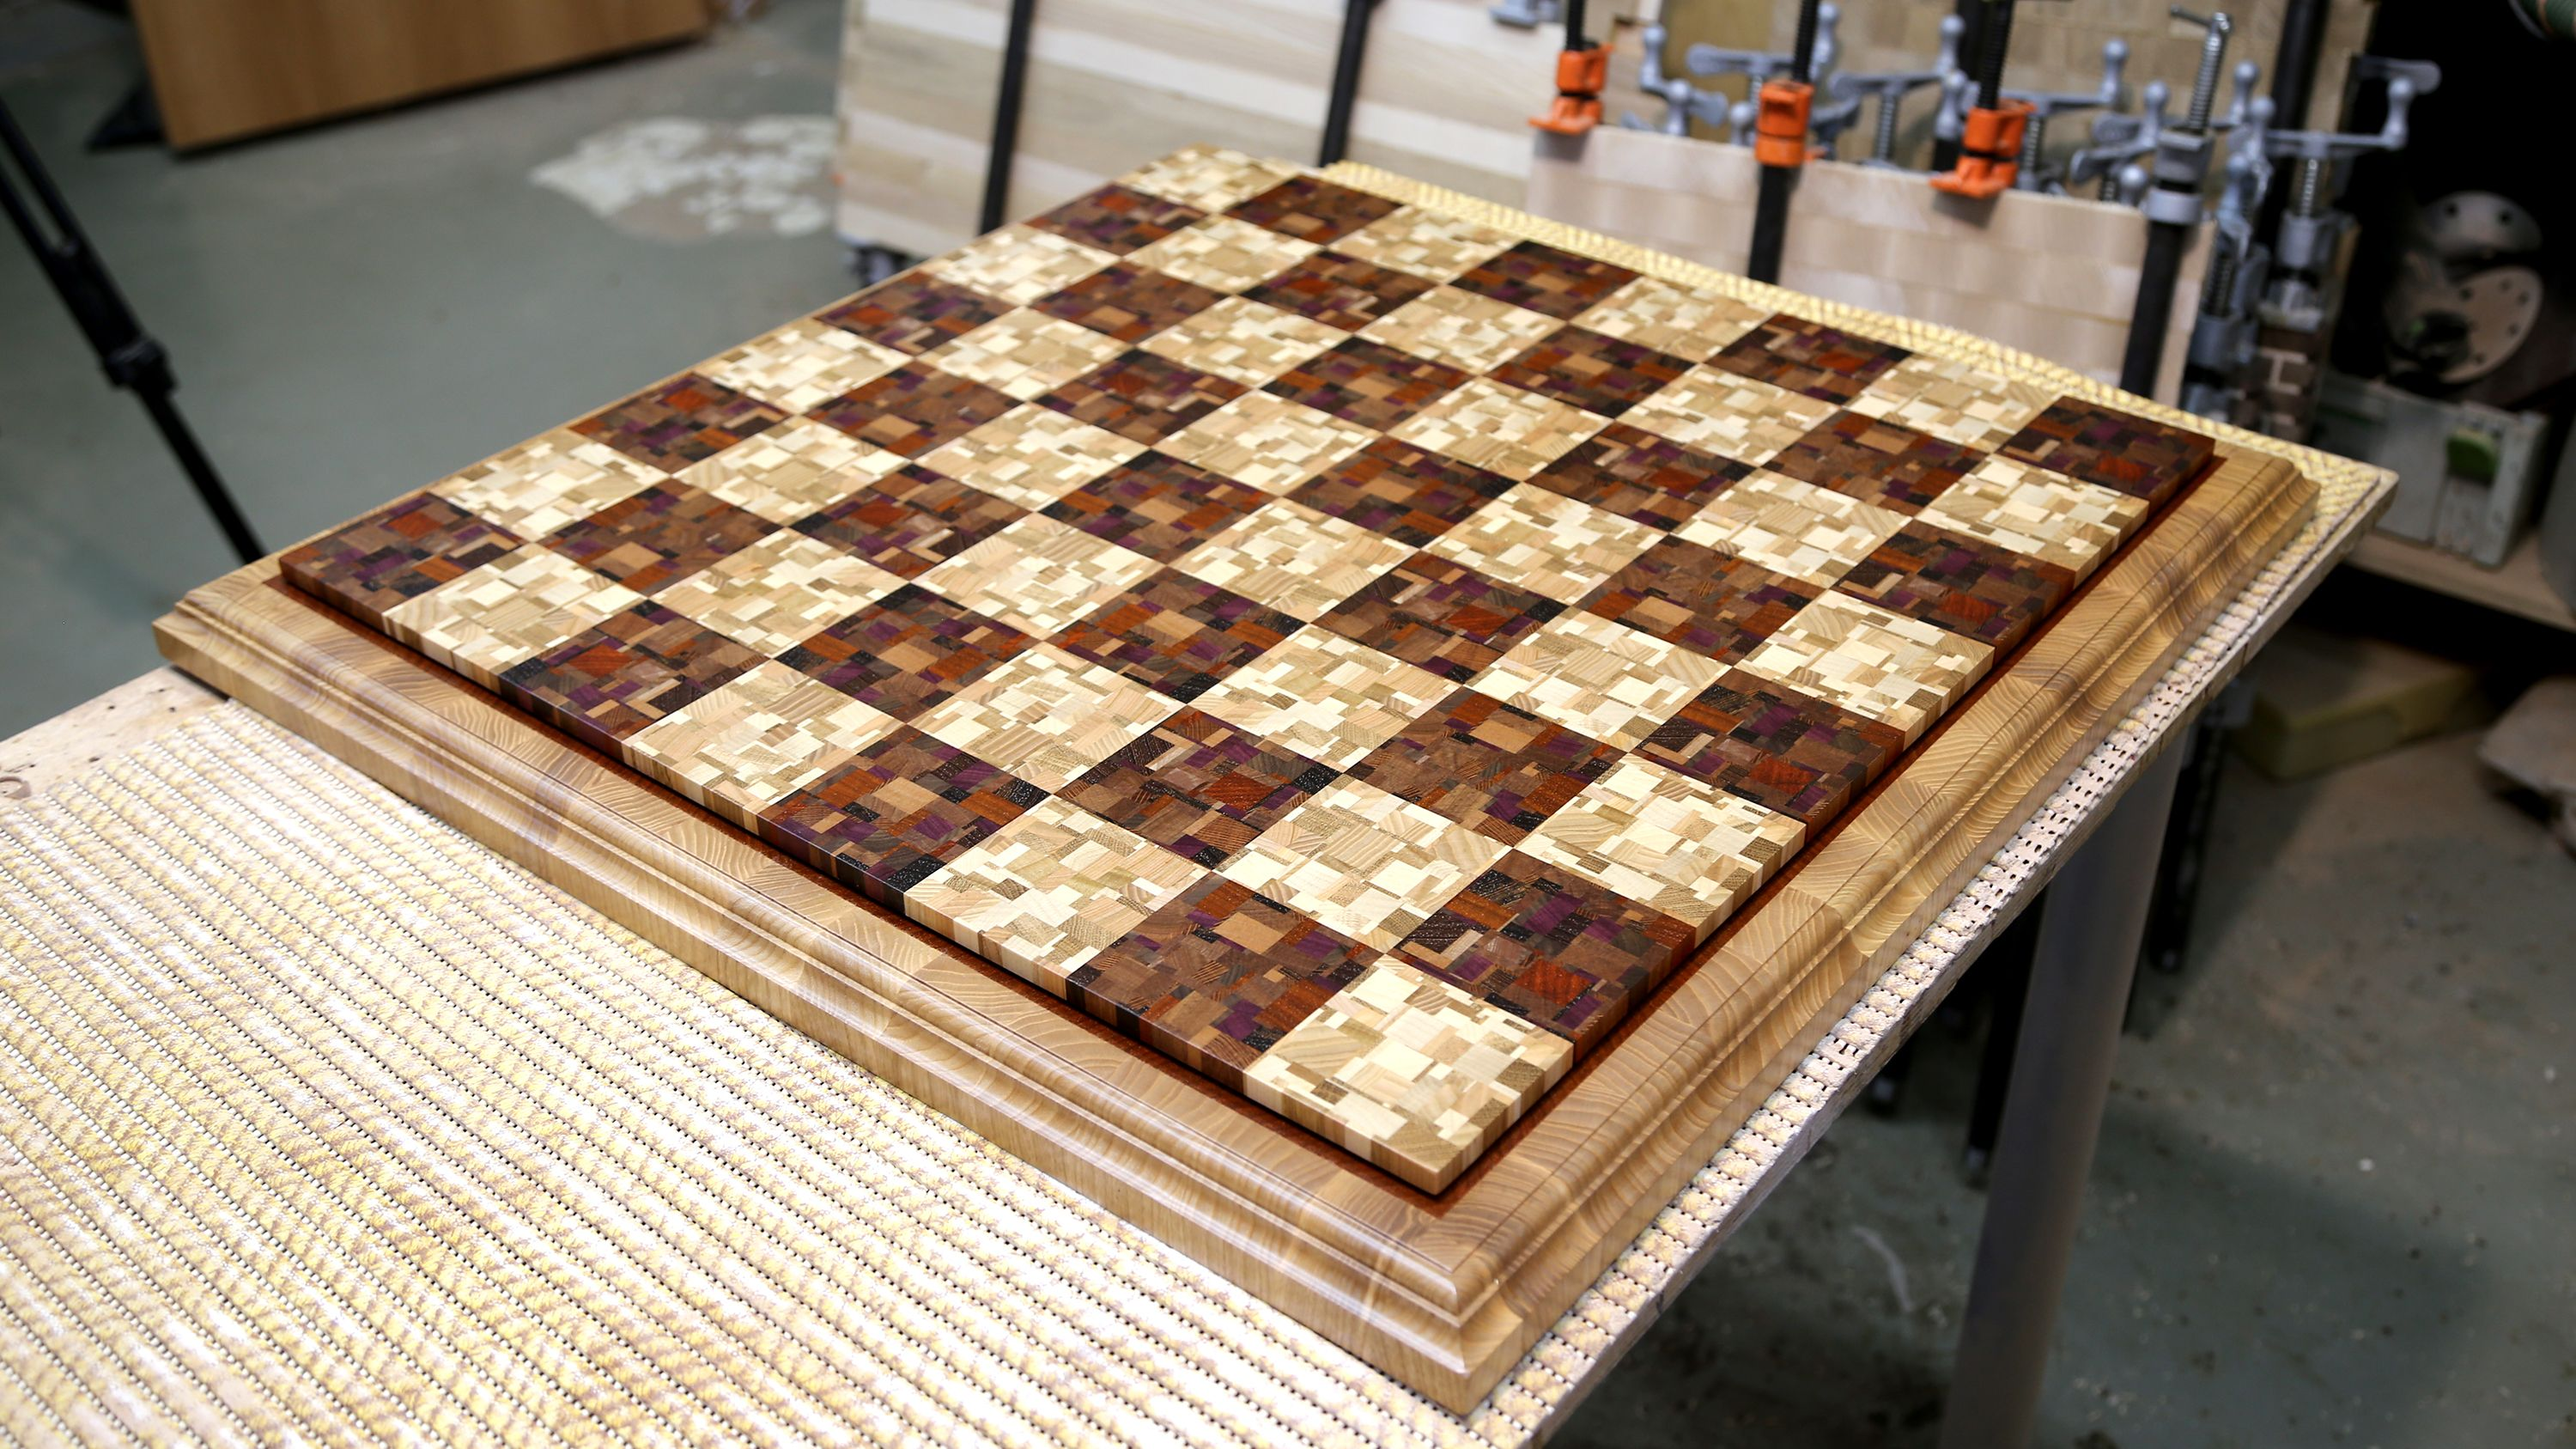 3 Square Chaotic Pattern Chessboard Unique Wood Carving Chess Board Wood Carving Designs